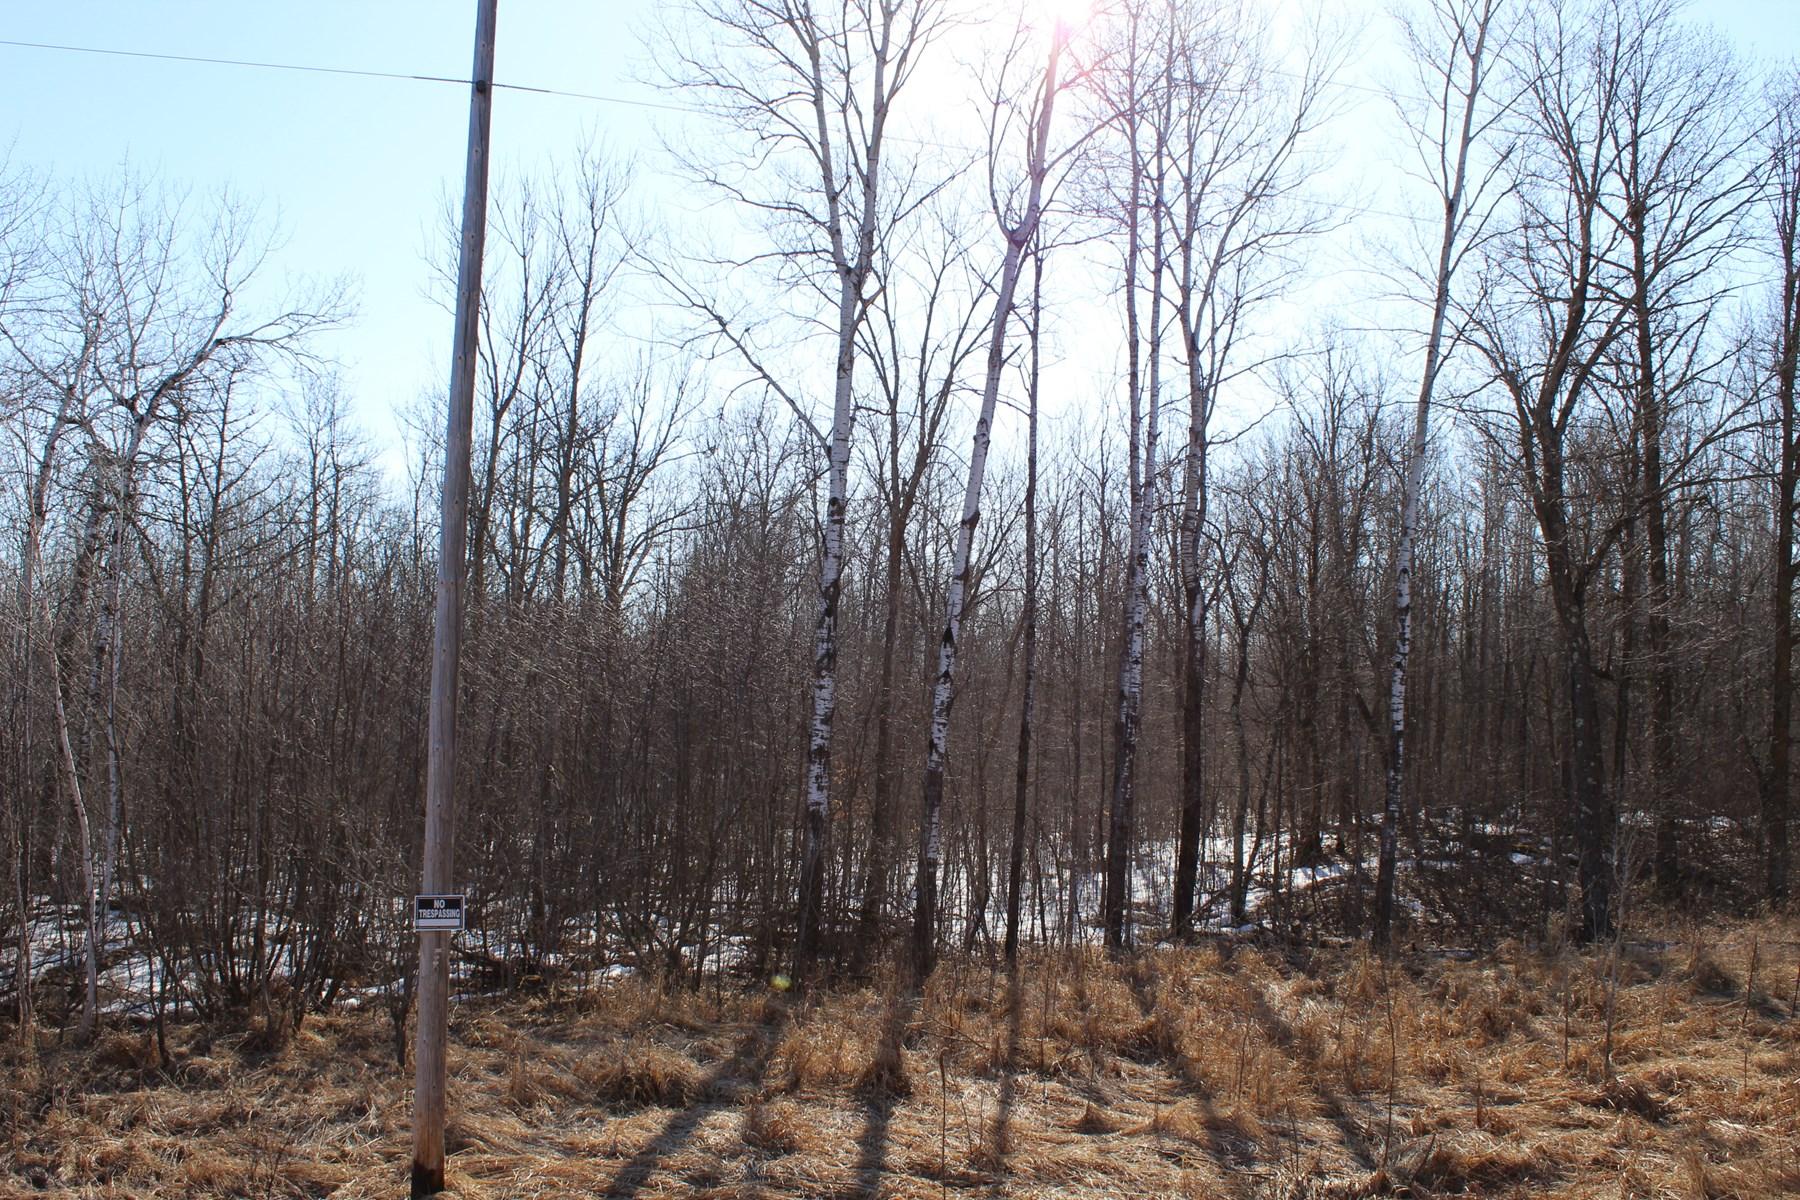 109 Acres of Mille Lacs Cty River Front Land For Sale